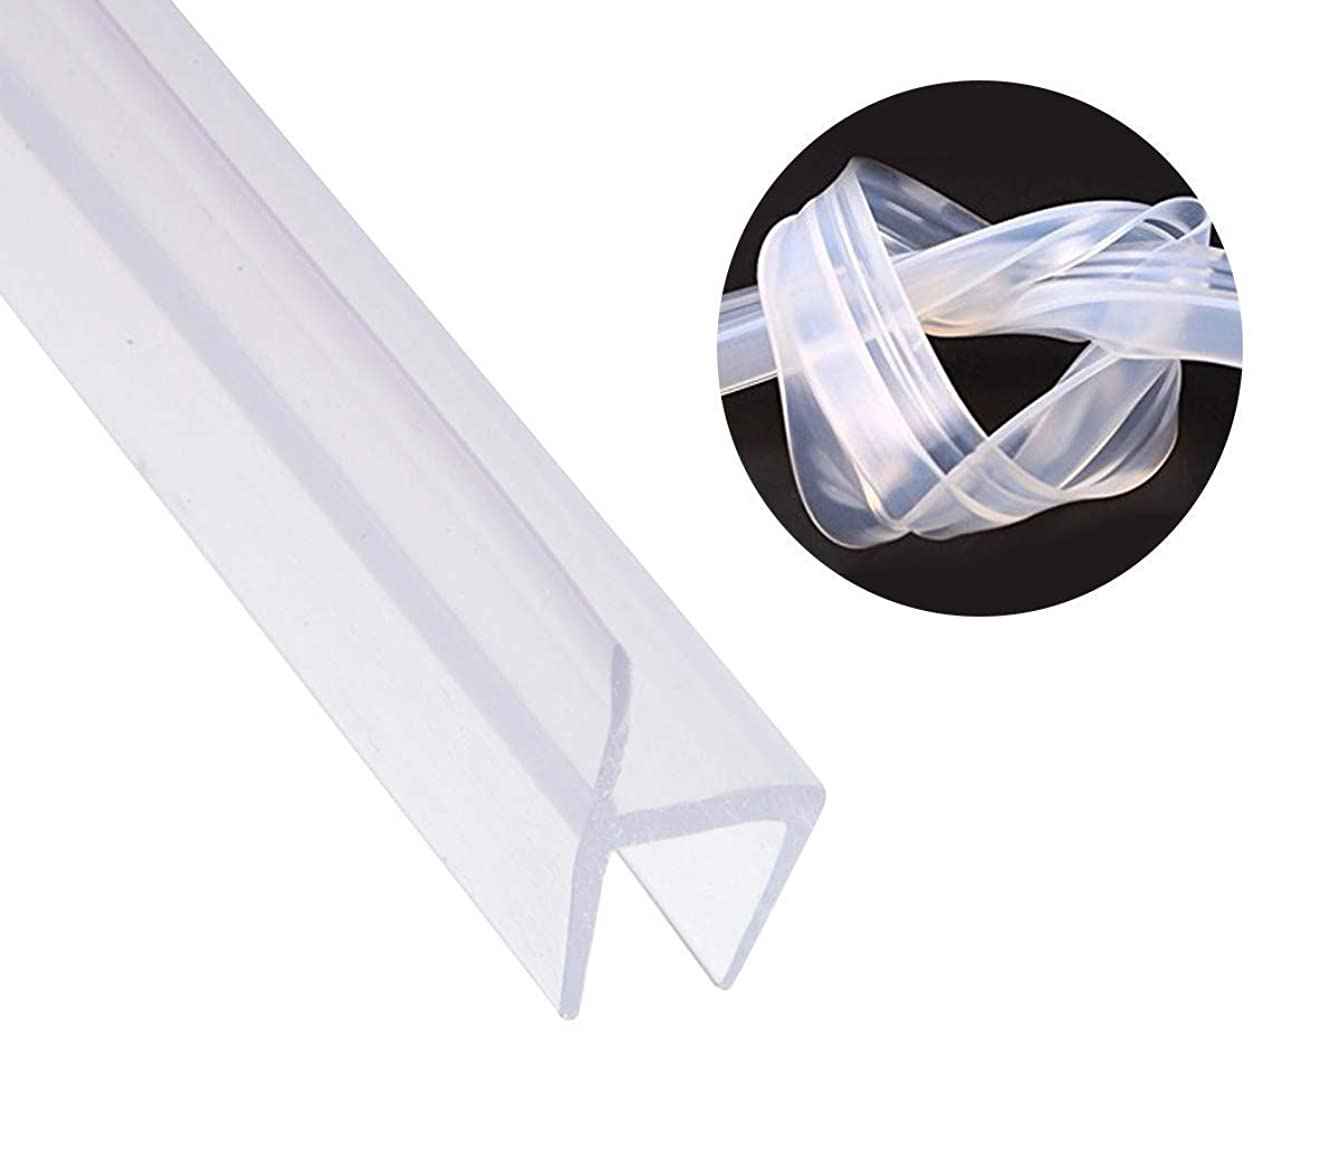 Shower Door Seal Strip Frameless Weatherproof Door Seal Flexible Silicone Sweep for Door and Windows, Flexible Silicone Seal Fit for 3/8